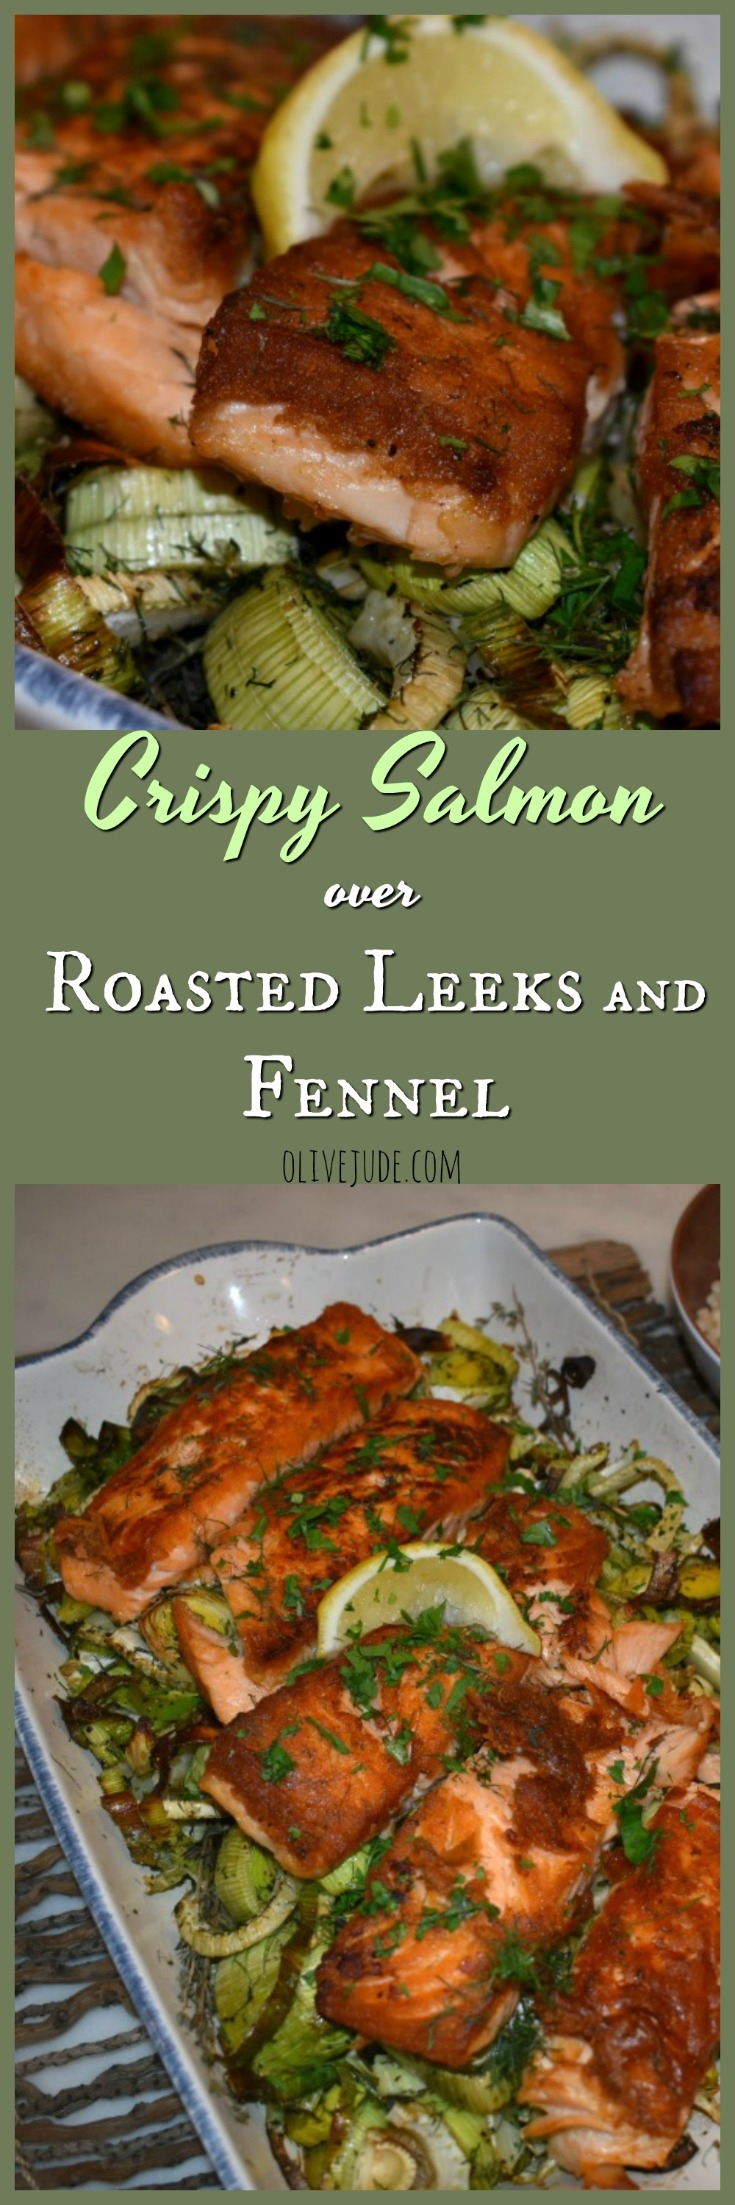 Crispy Salmon over Roasted Leeks and Fennel #crispysalmon #bakedsalmonrecipe #leeksandfennel #salmonwithfennel